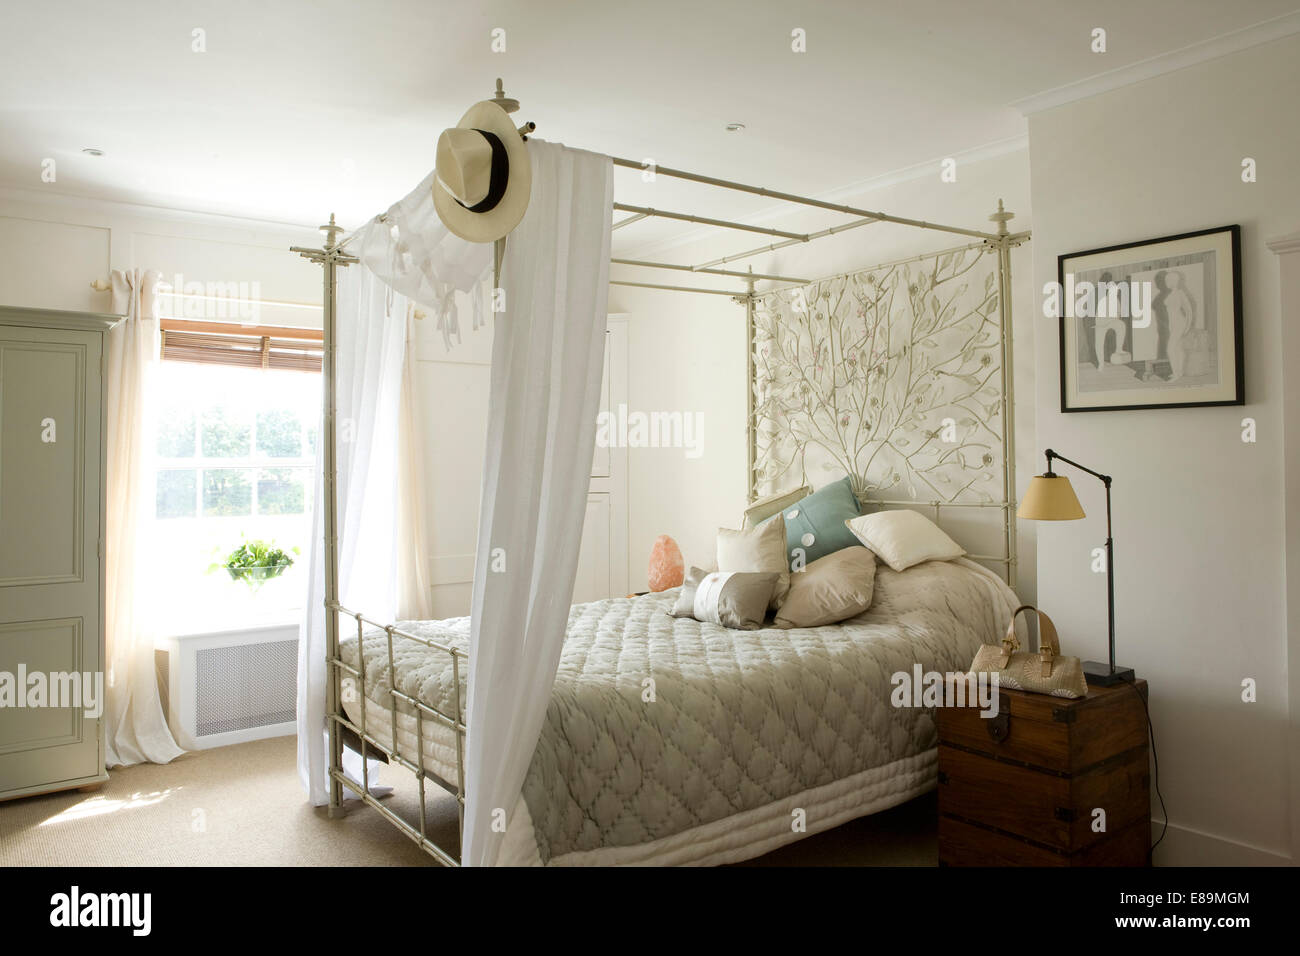 White Cotton Drapes On Four Poster Bed With Ornate Metalwork Panel In Stock Photo Royalty Free